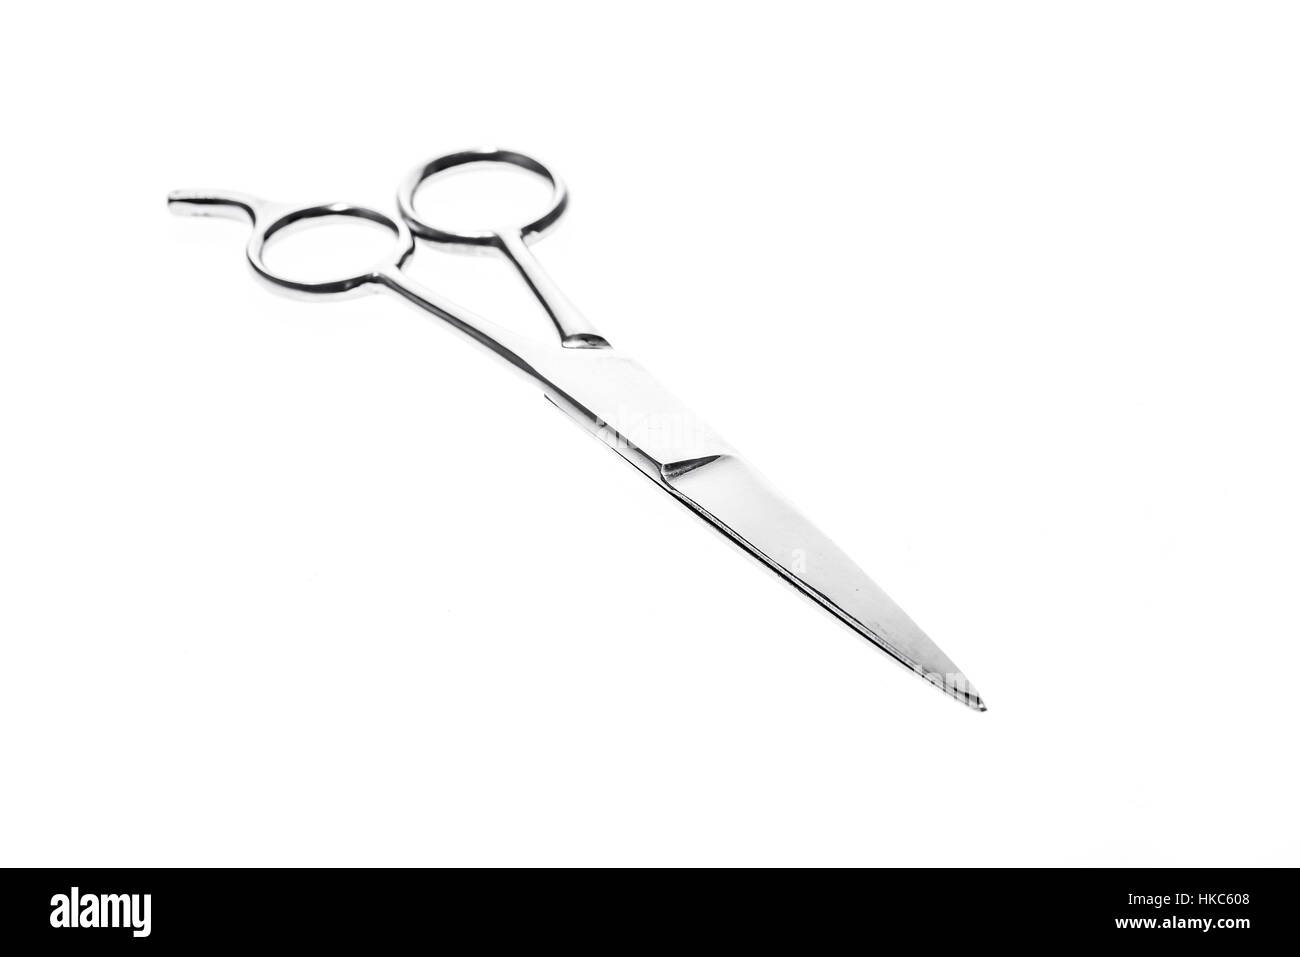 Hairdresser or barber silver professional scissors for cutting hair. Isolated on white background - Stock Image